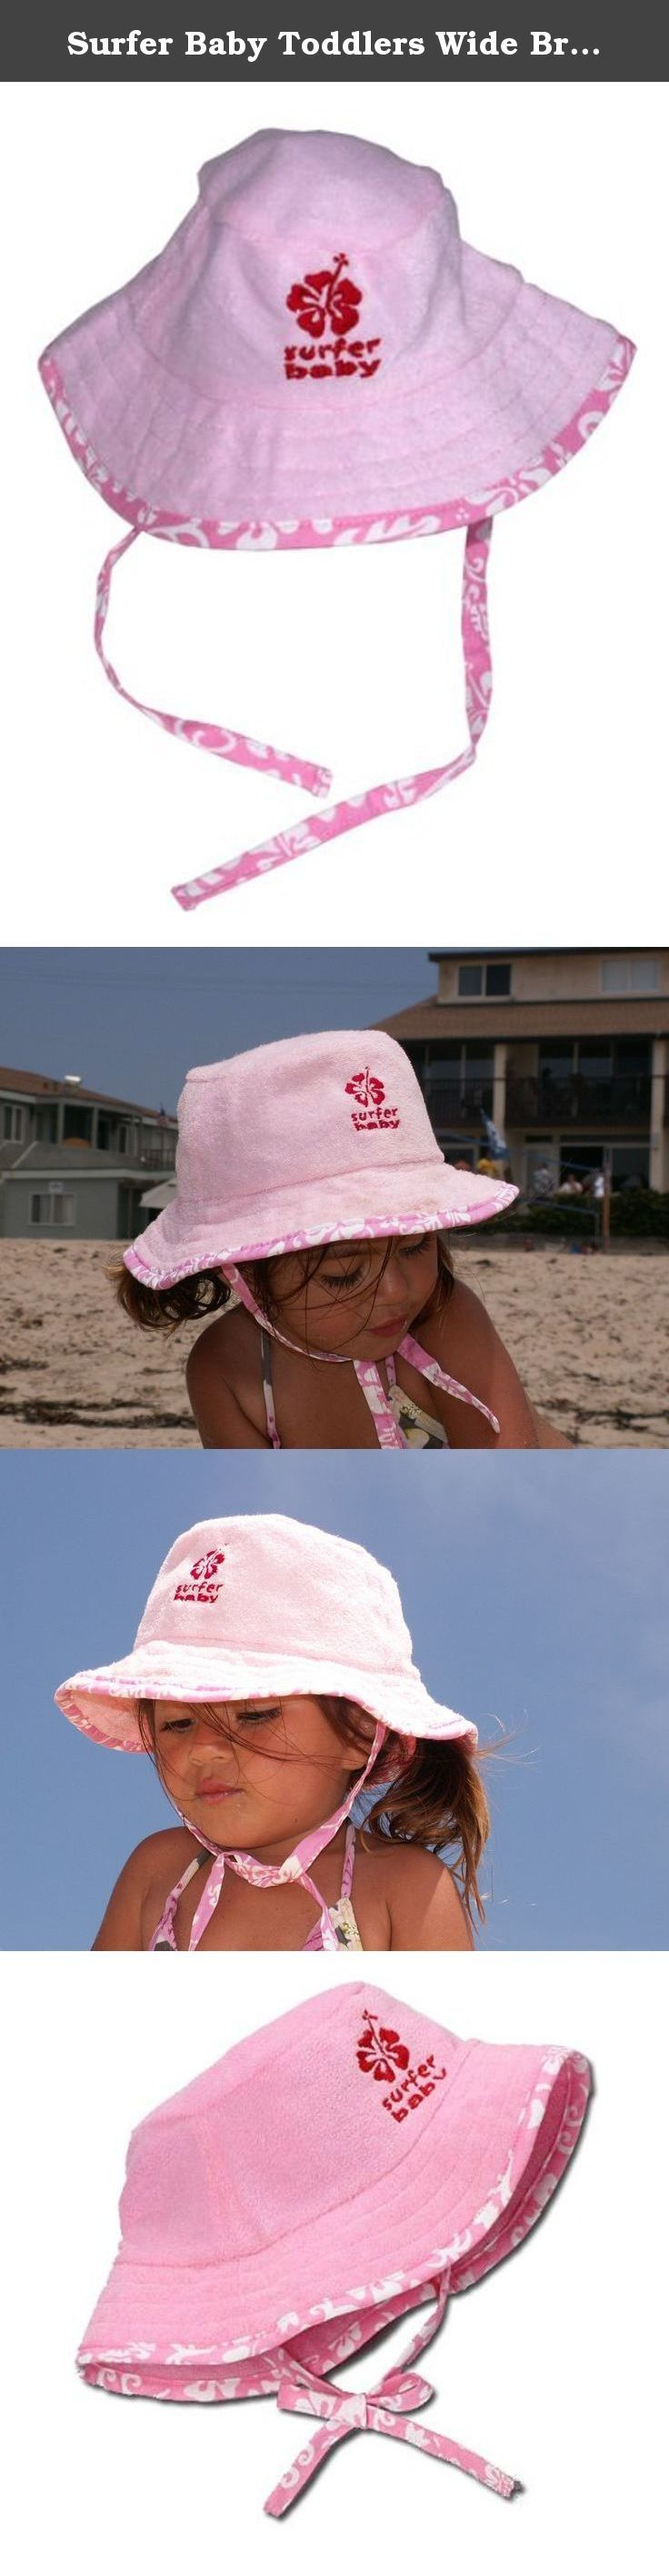 Surfer Baby Toddlers Wide Brim Kids Floppy Beach/Sandbox/Play Sun Protection Bucket Hat (Pink). This is a 100% cotton terry cloth floppy sun protection hat, lined with cotton, and trimmed in our Surfer Baby aloha print with matching ties to secure the hat under the chin. Perfect for the beach, sandbox, park, in the car, any time you want to keep your little one's face protected from sunburn! Pink with a matching embroidered Surfer Baby logo. One size fits most toddlers 12-36 mos.